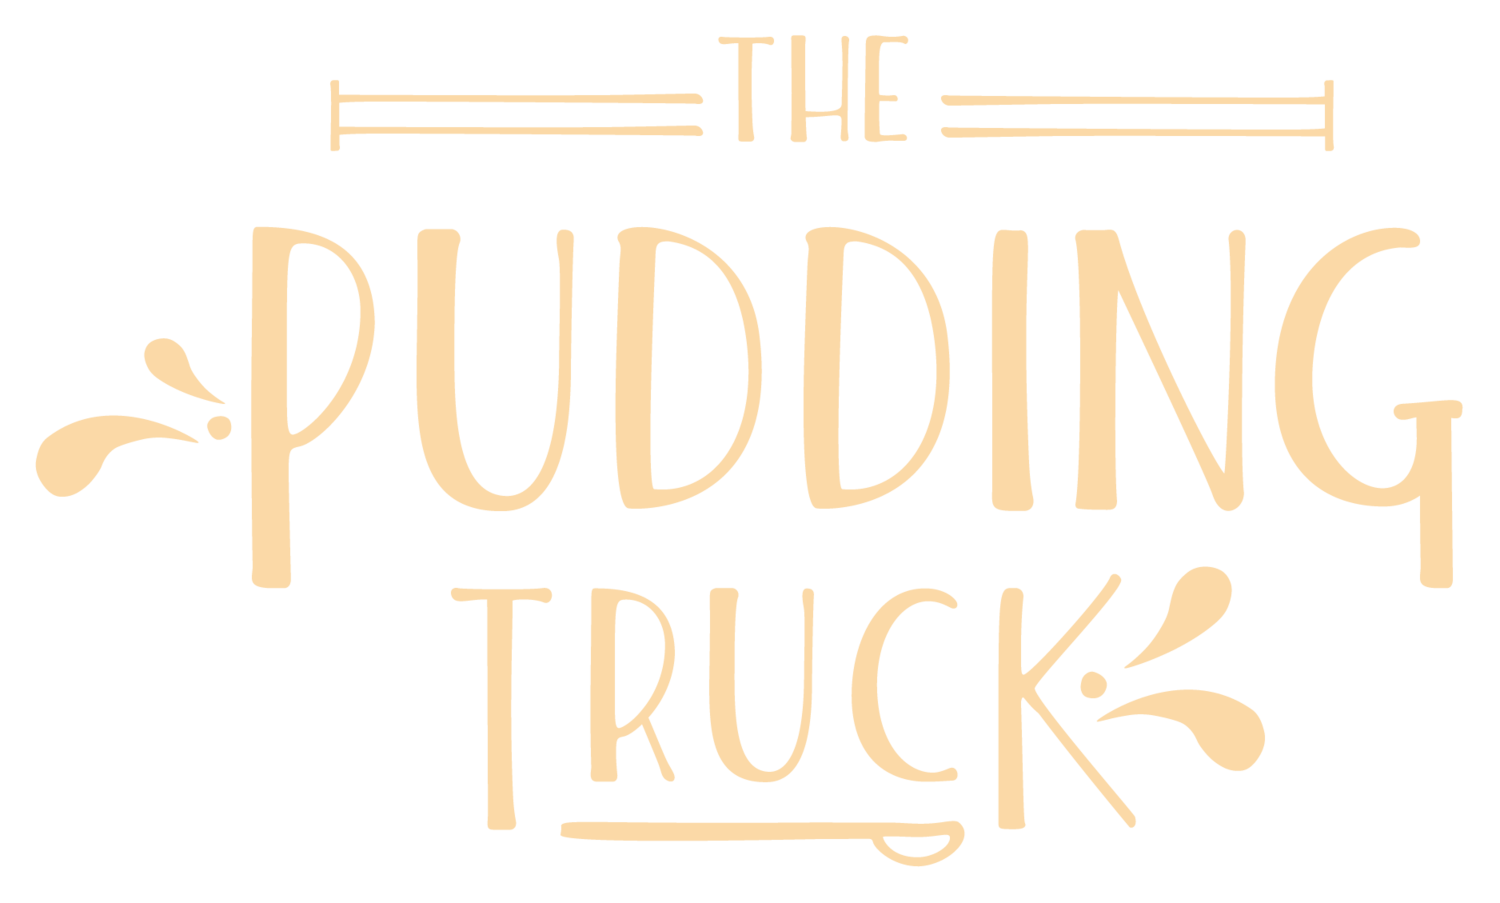 The Pudding Truck